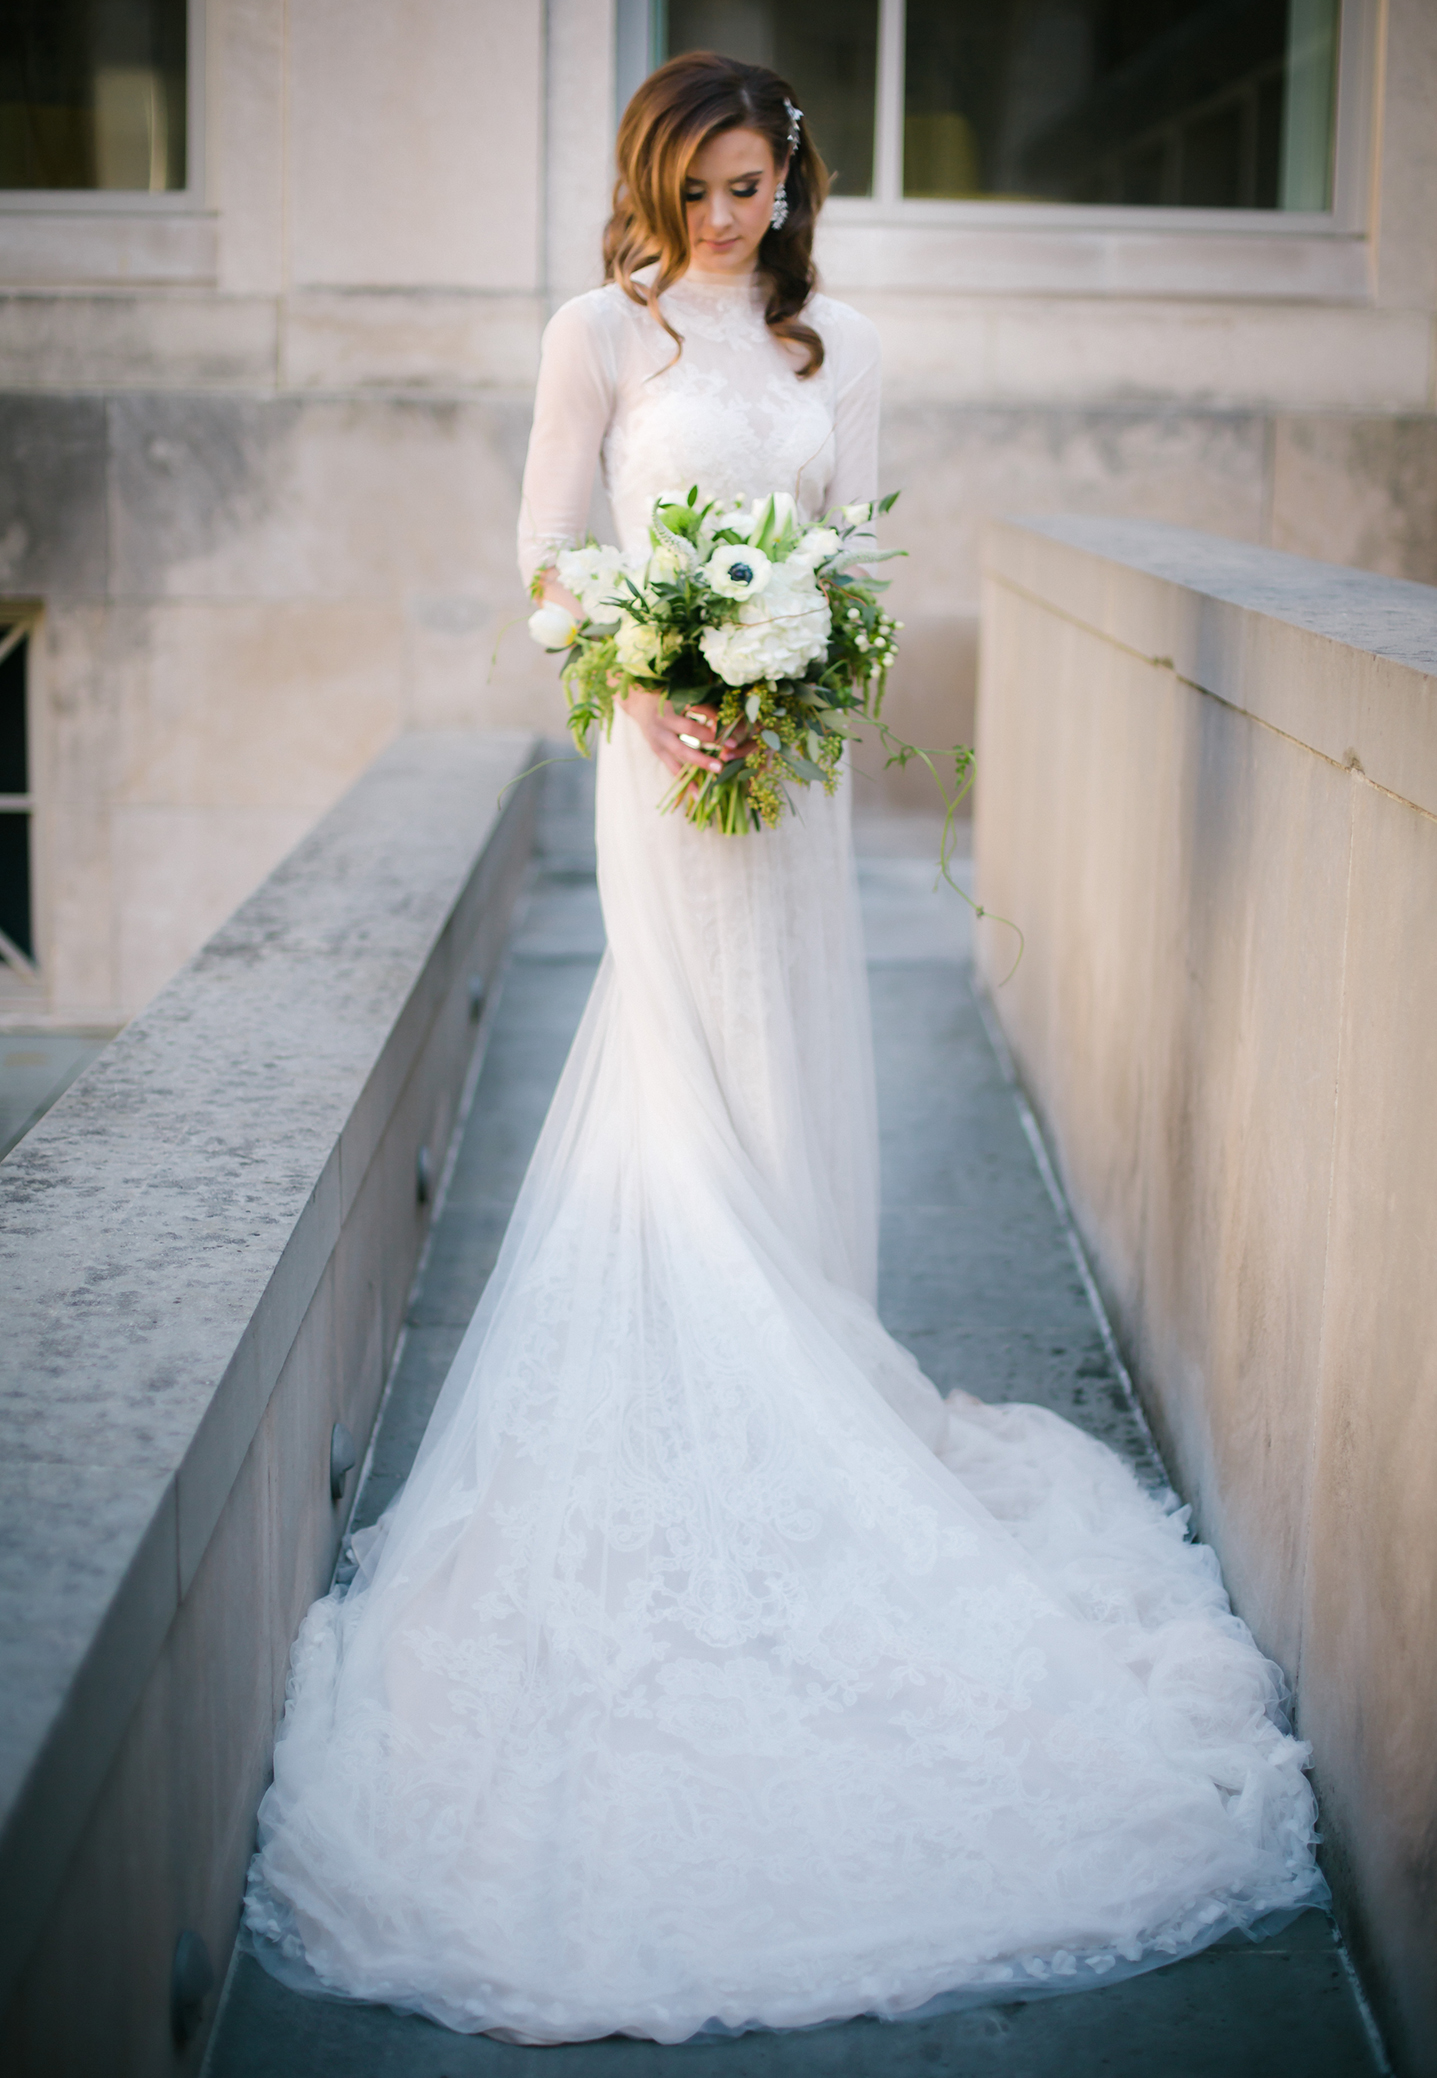 Winter bride in an elegant wedding dress holding a white and green bouquet in a natural organic shape.